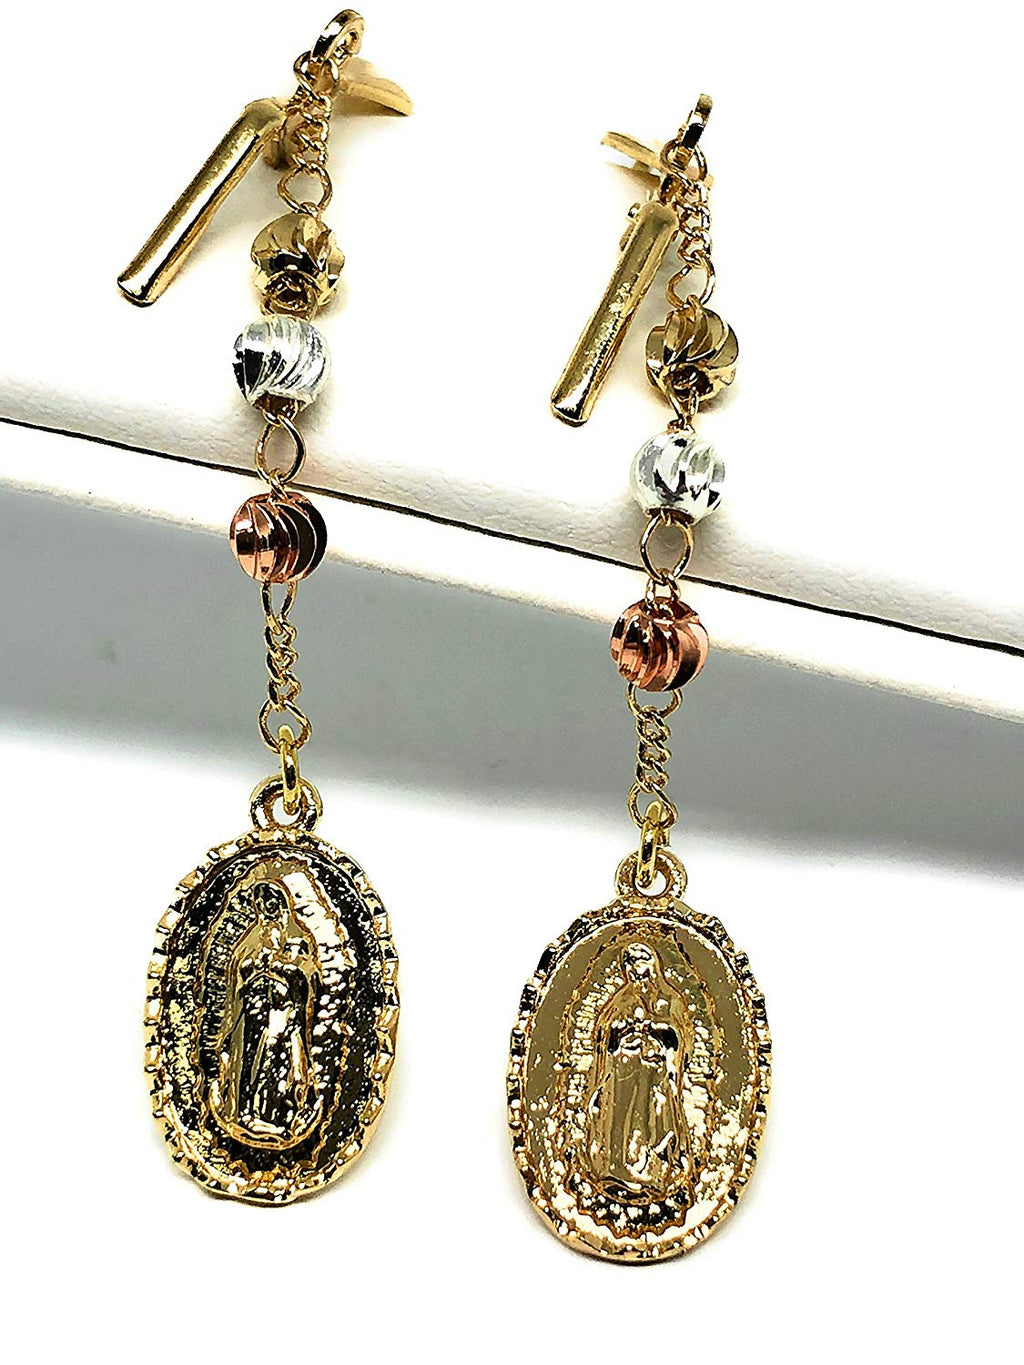 Gold Plated Tri Color Virgin Mary Earrings Aretes Oro Laminado Virgen De Guadalupe Tres Colores - Fran & Co. Jewelry